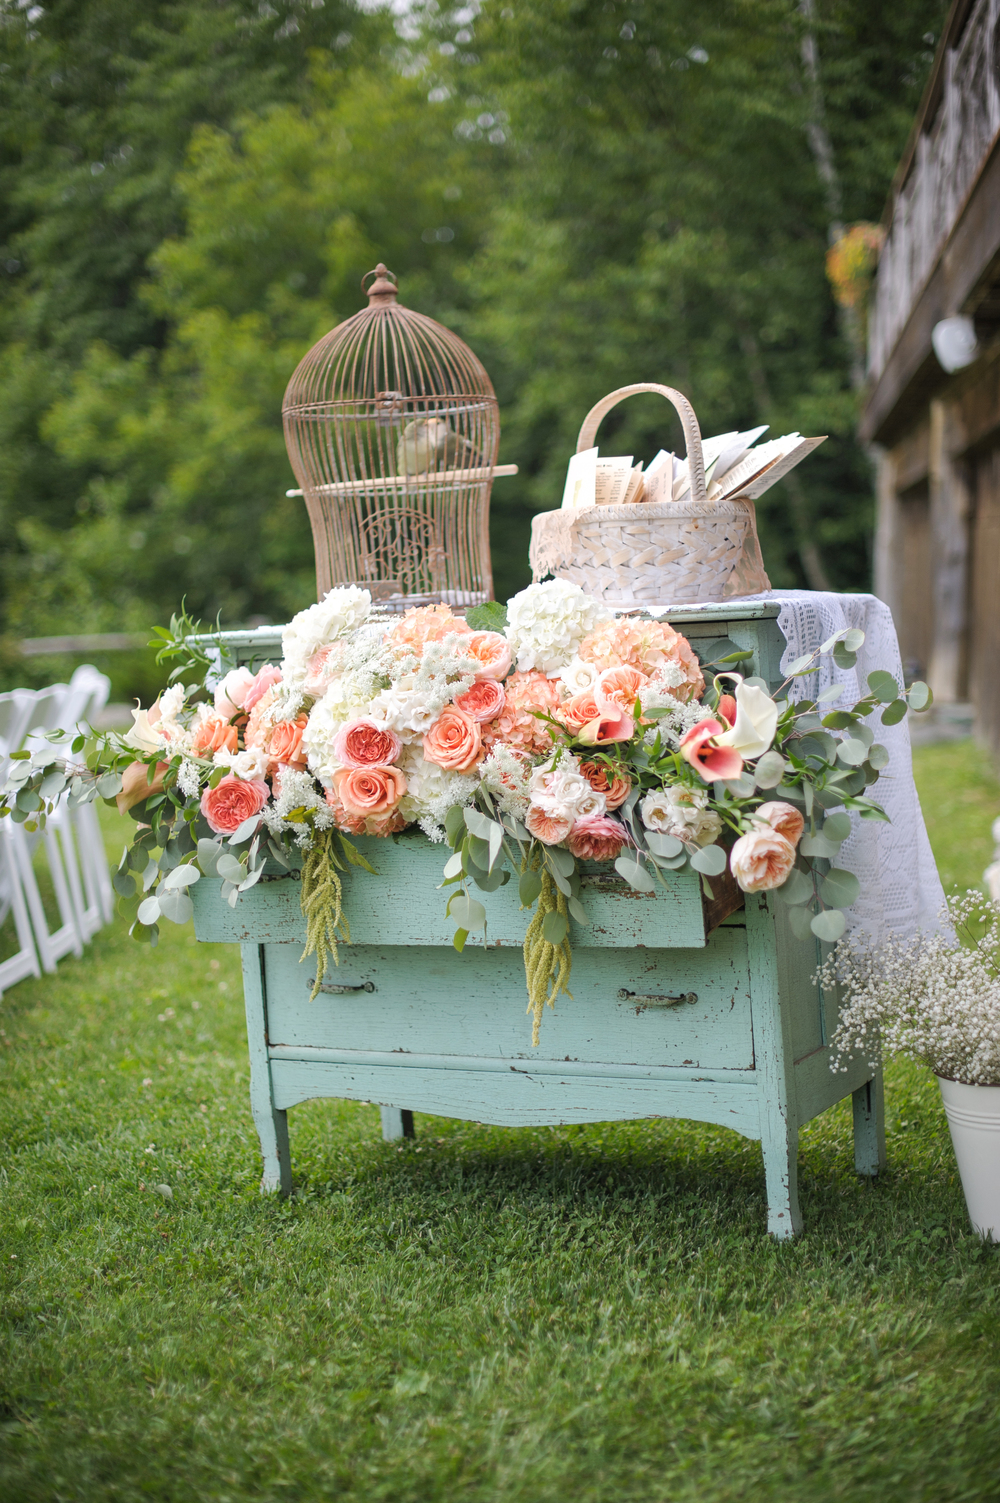 vintage_dresser_and_birdcage_filled_with_flowers_for_wedding